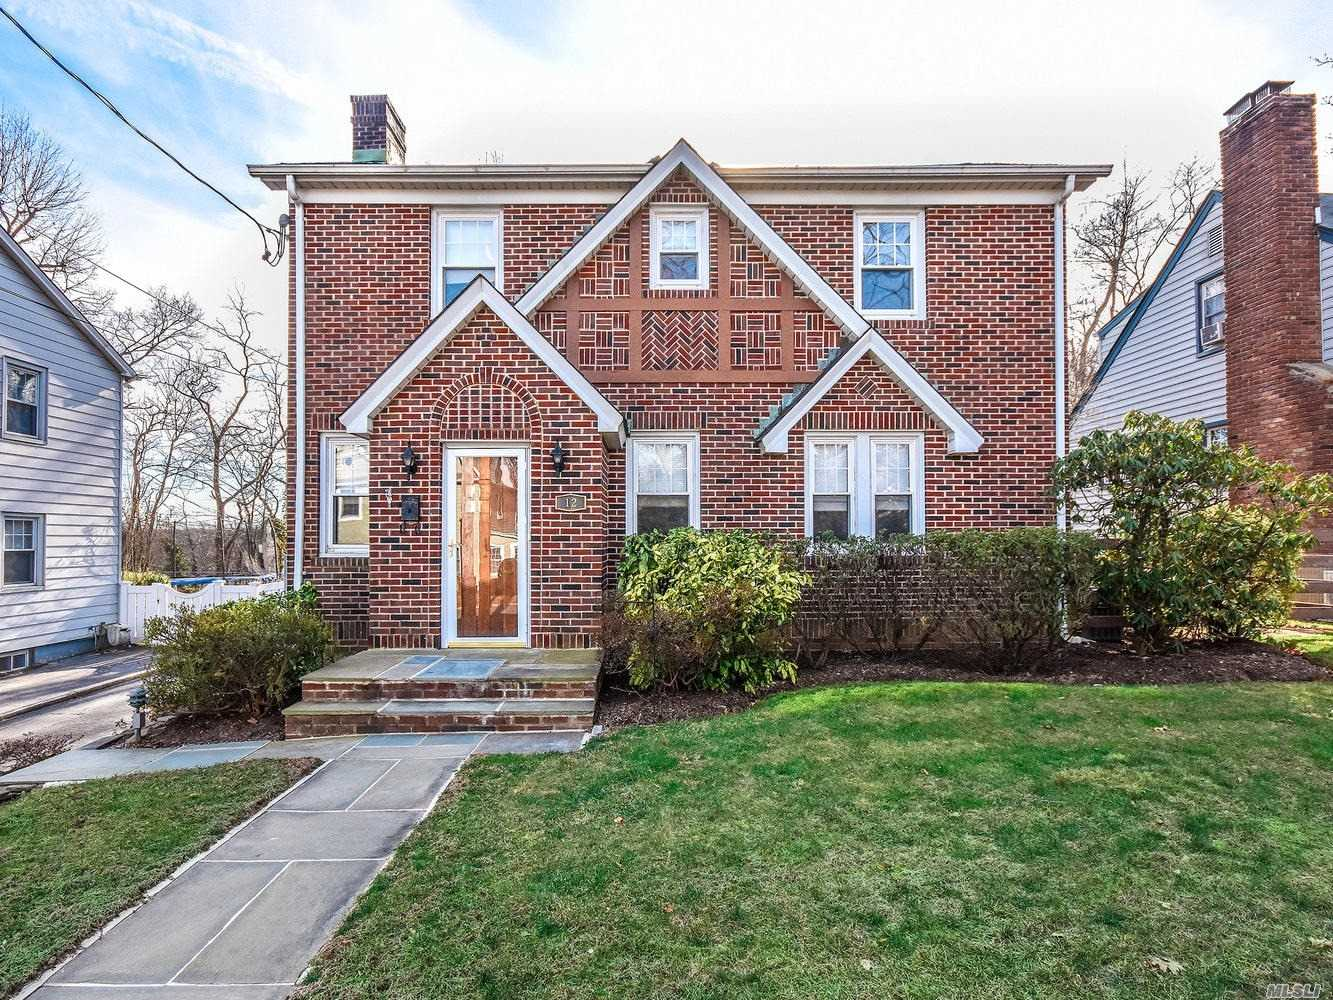 Excited To List This Charming Tudor! It Will Certainly Warm Up Your Winter! These Homeowners Have Kept This Home Meticulously Clean, Organized And Well Cared For. Then There Are The Details That Have Been Part Of The Home From The Beginning...Strong Front Door, Welcoming Arches, Vintage Wood Floors, Stain Glass Windows, Tudor Style Brick Fireplace, Deep Curved Plaster Cove Ceiling Molding & Original Glass/Brass Decorative Door Handles. Enjoy The Beaches, Public Golf Course & Outdoor Concerts!